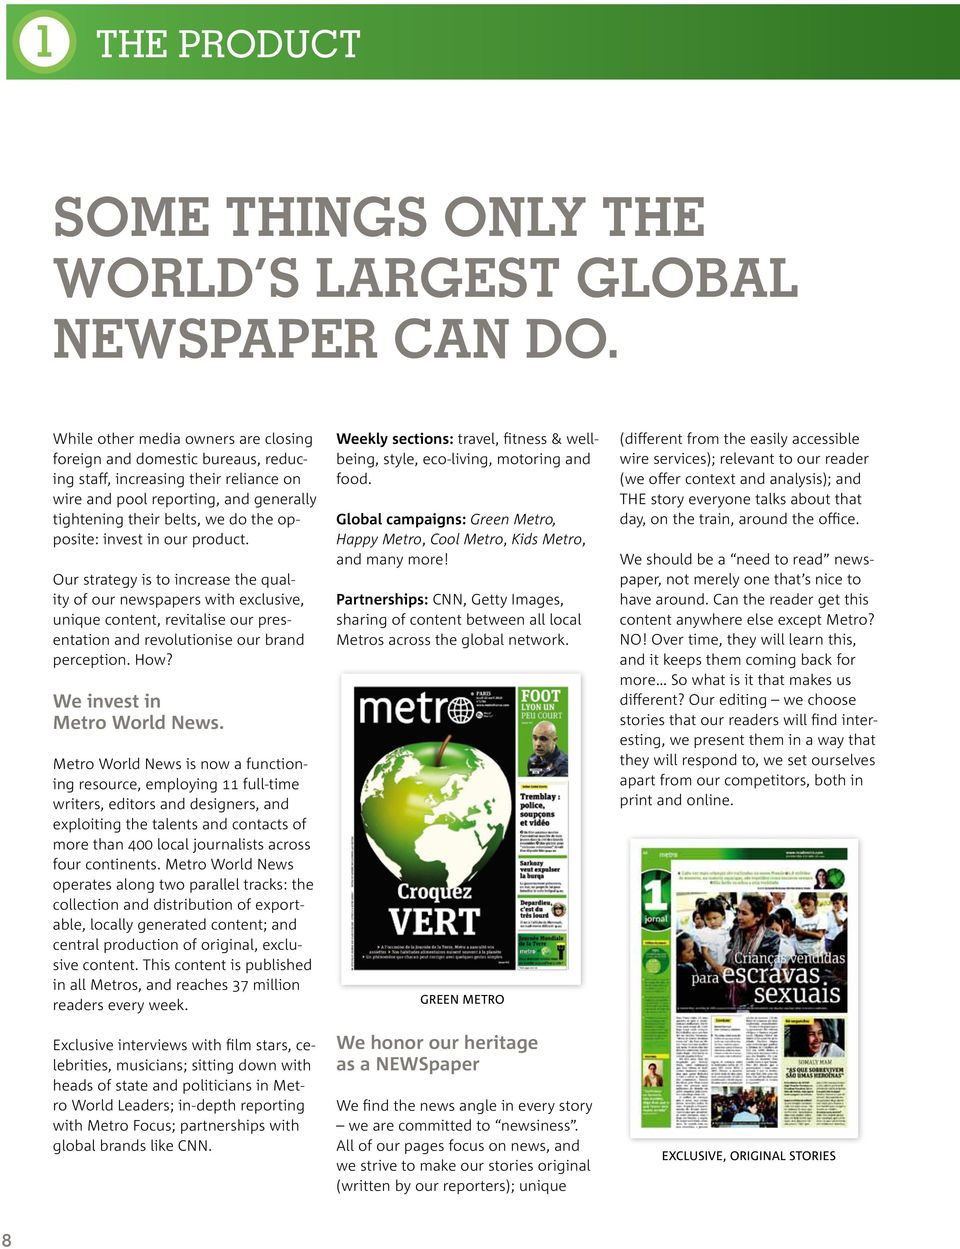 invest in our product. Our strategy is to increase the quality of our newspapers with exclusive, unique content, revitalise our presentation and revolutionise our brand perception. How?